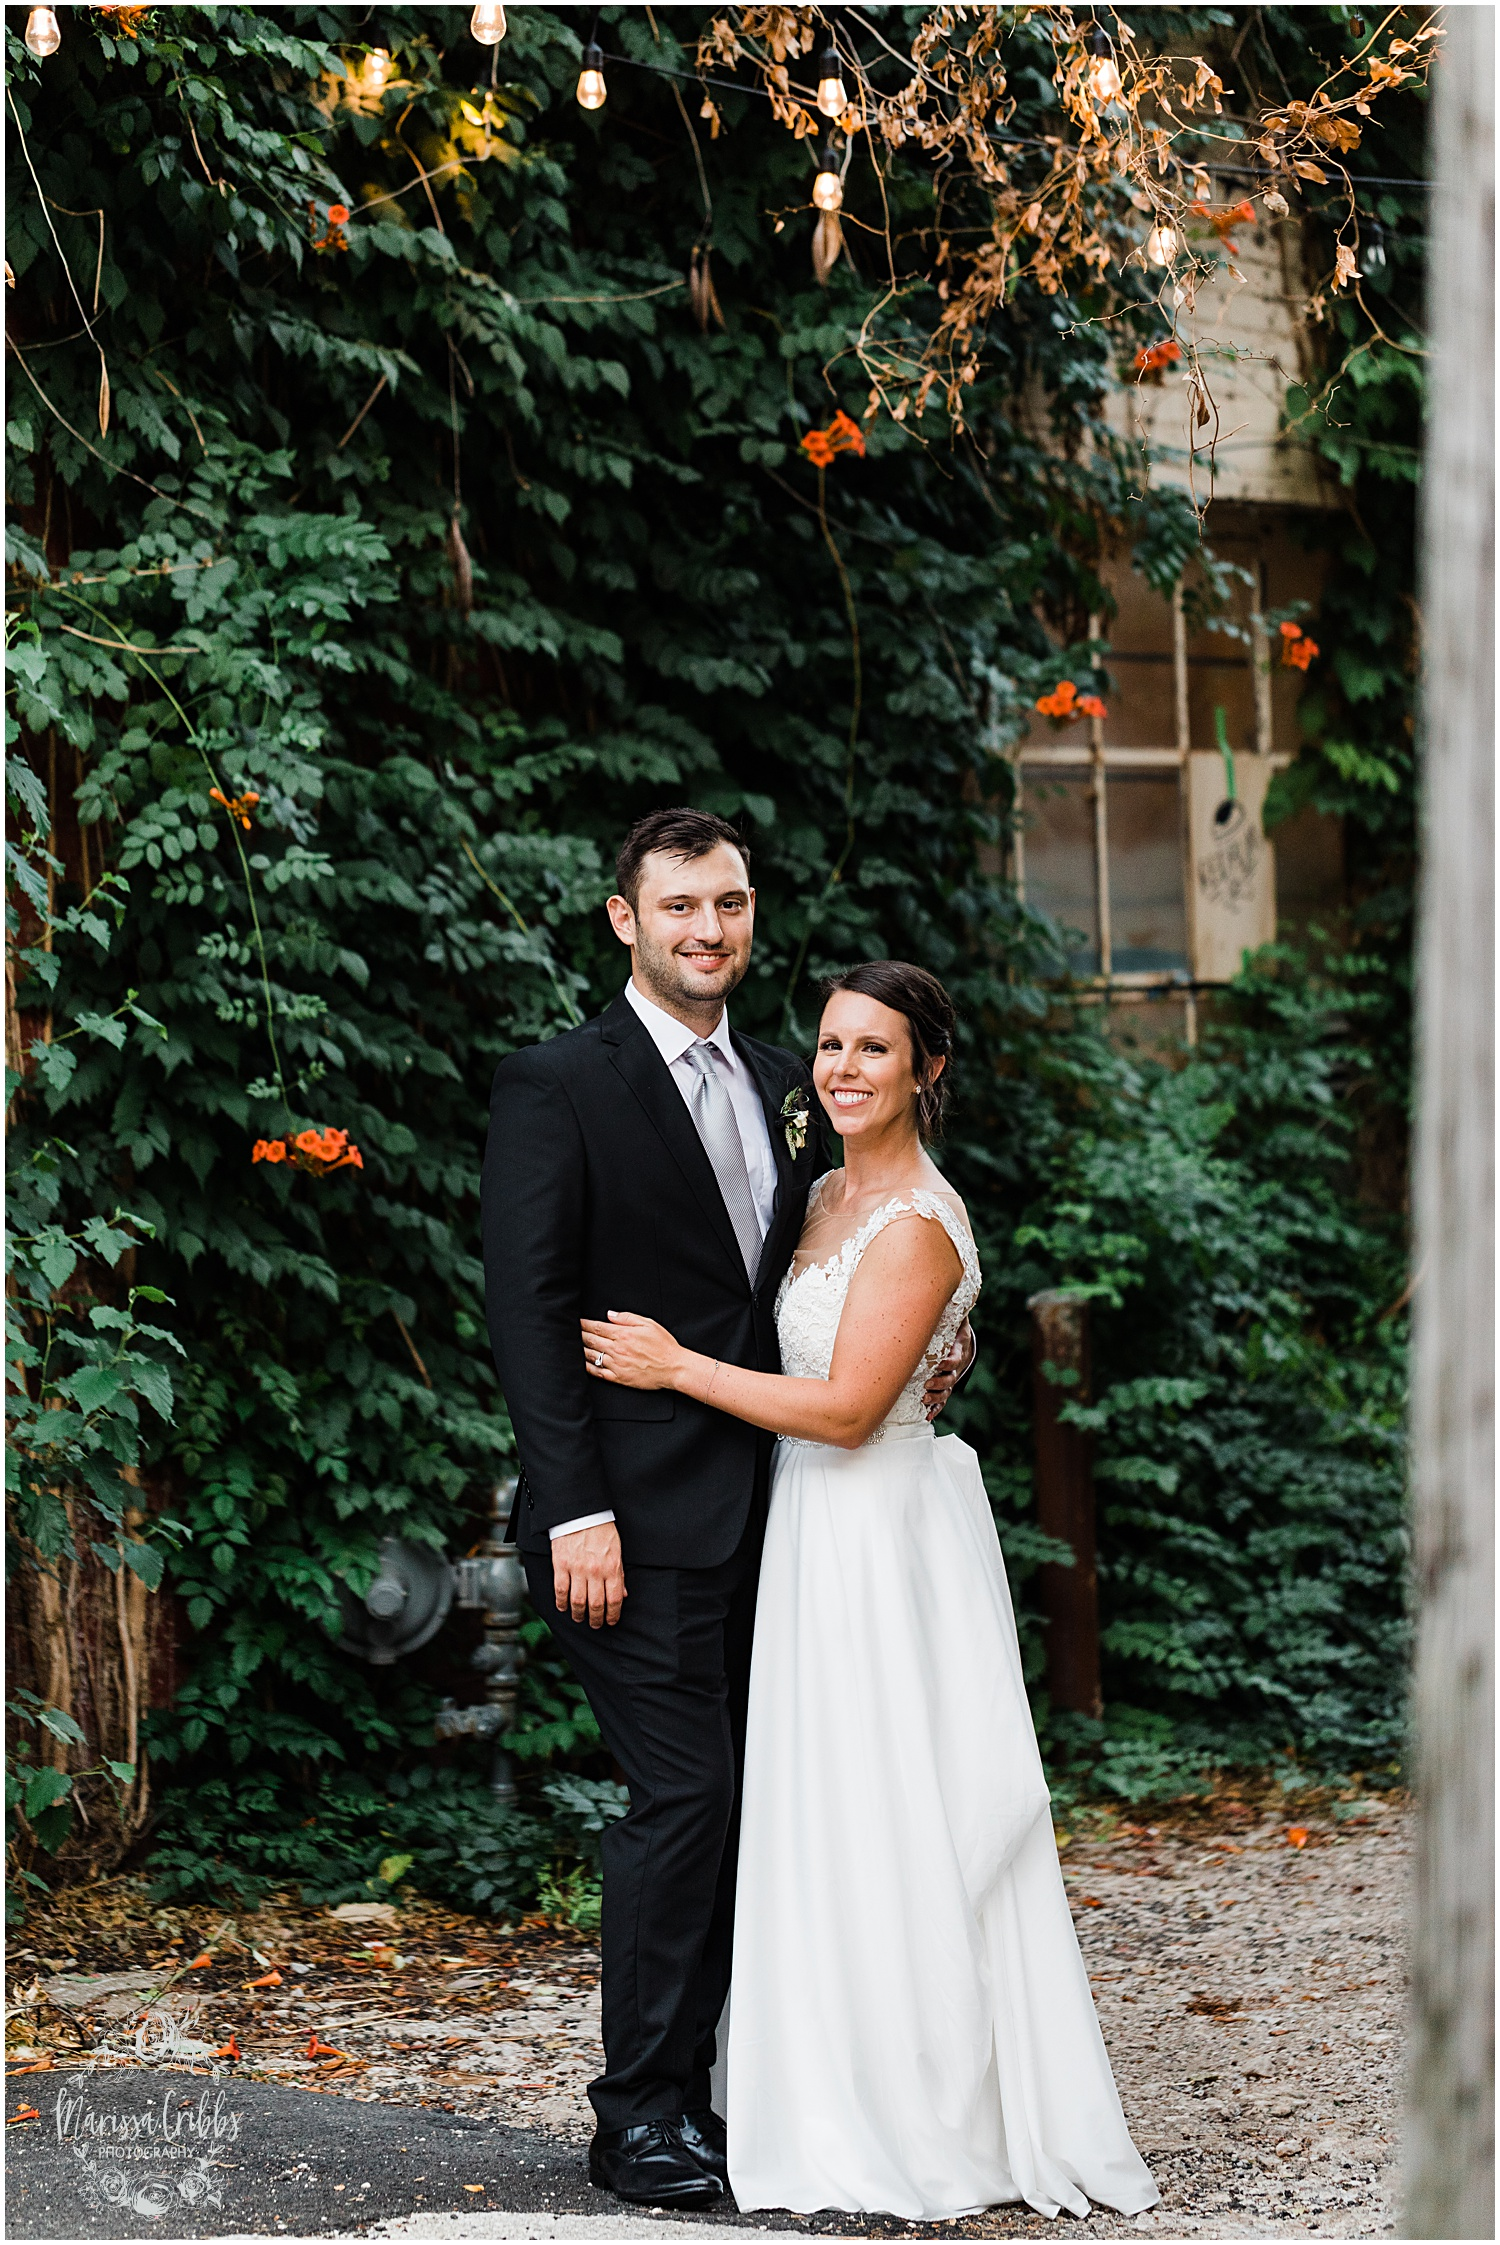 KELLY & MITCH MARRIED BLOG | MARISSA CRIBBS PHOTOGRAPHY | THE EVERLY EVENT SPACE_8918.jpg